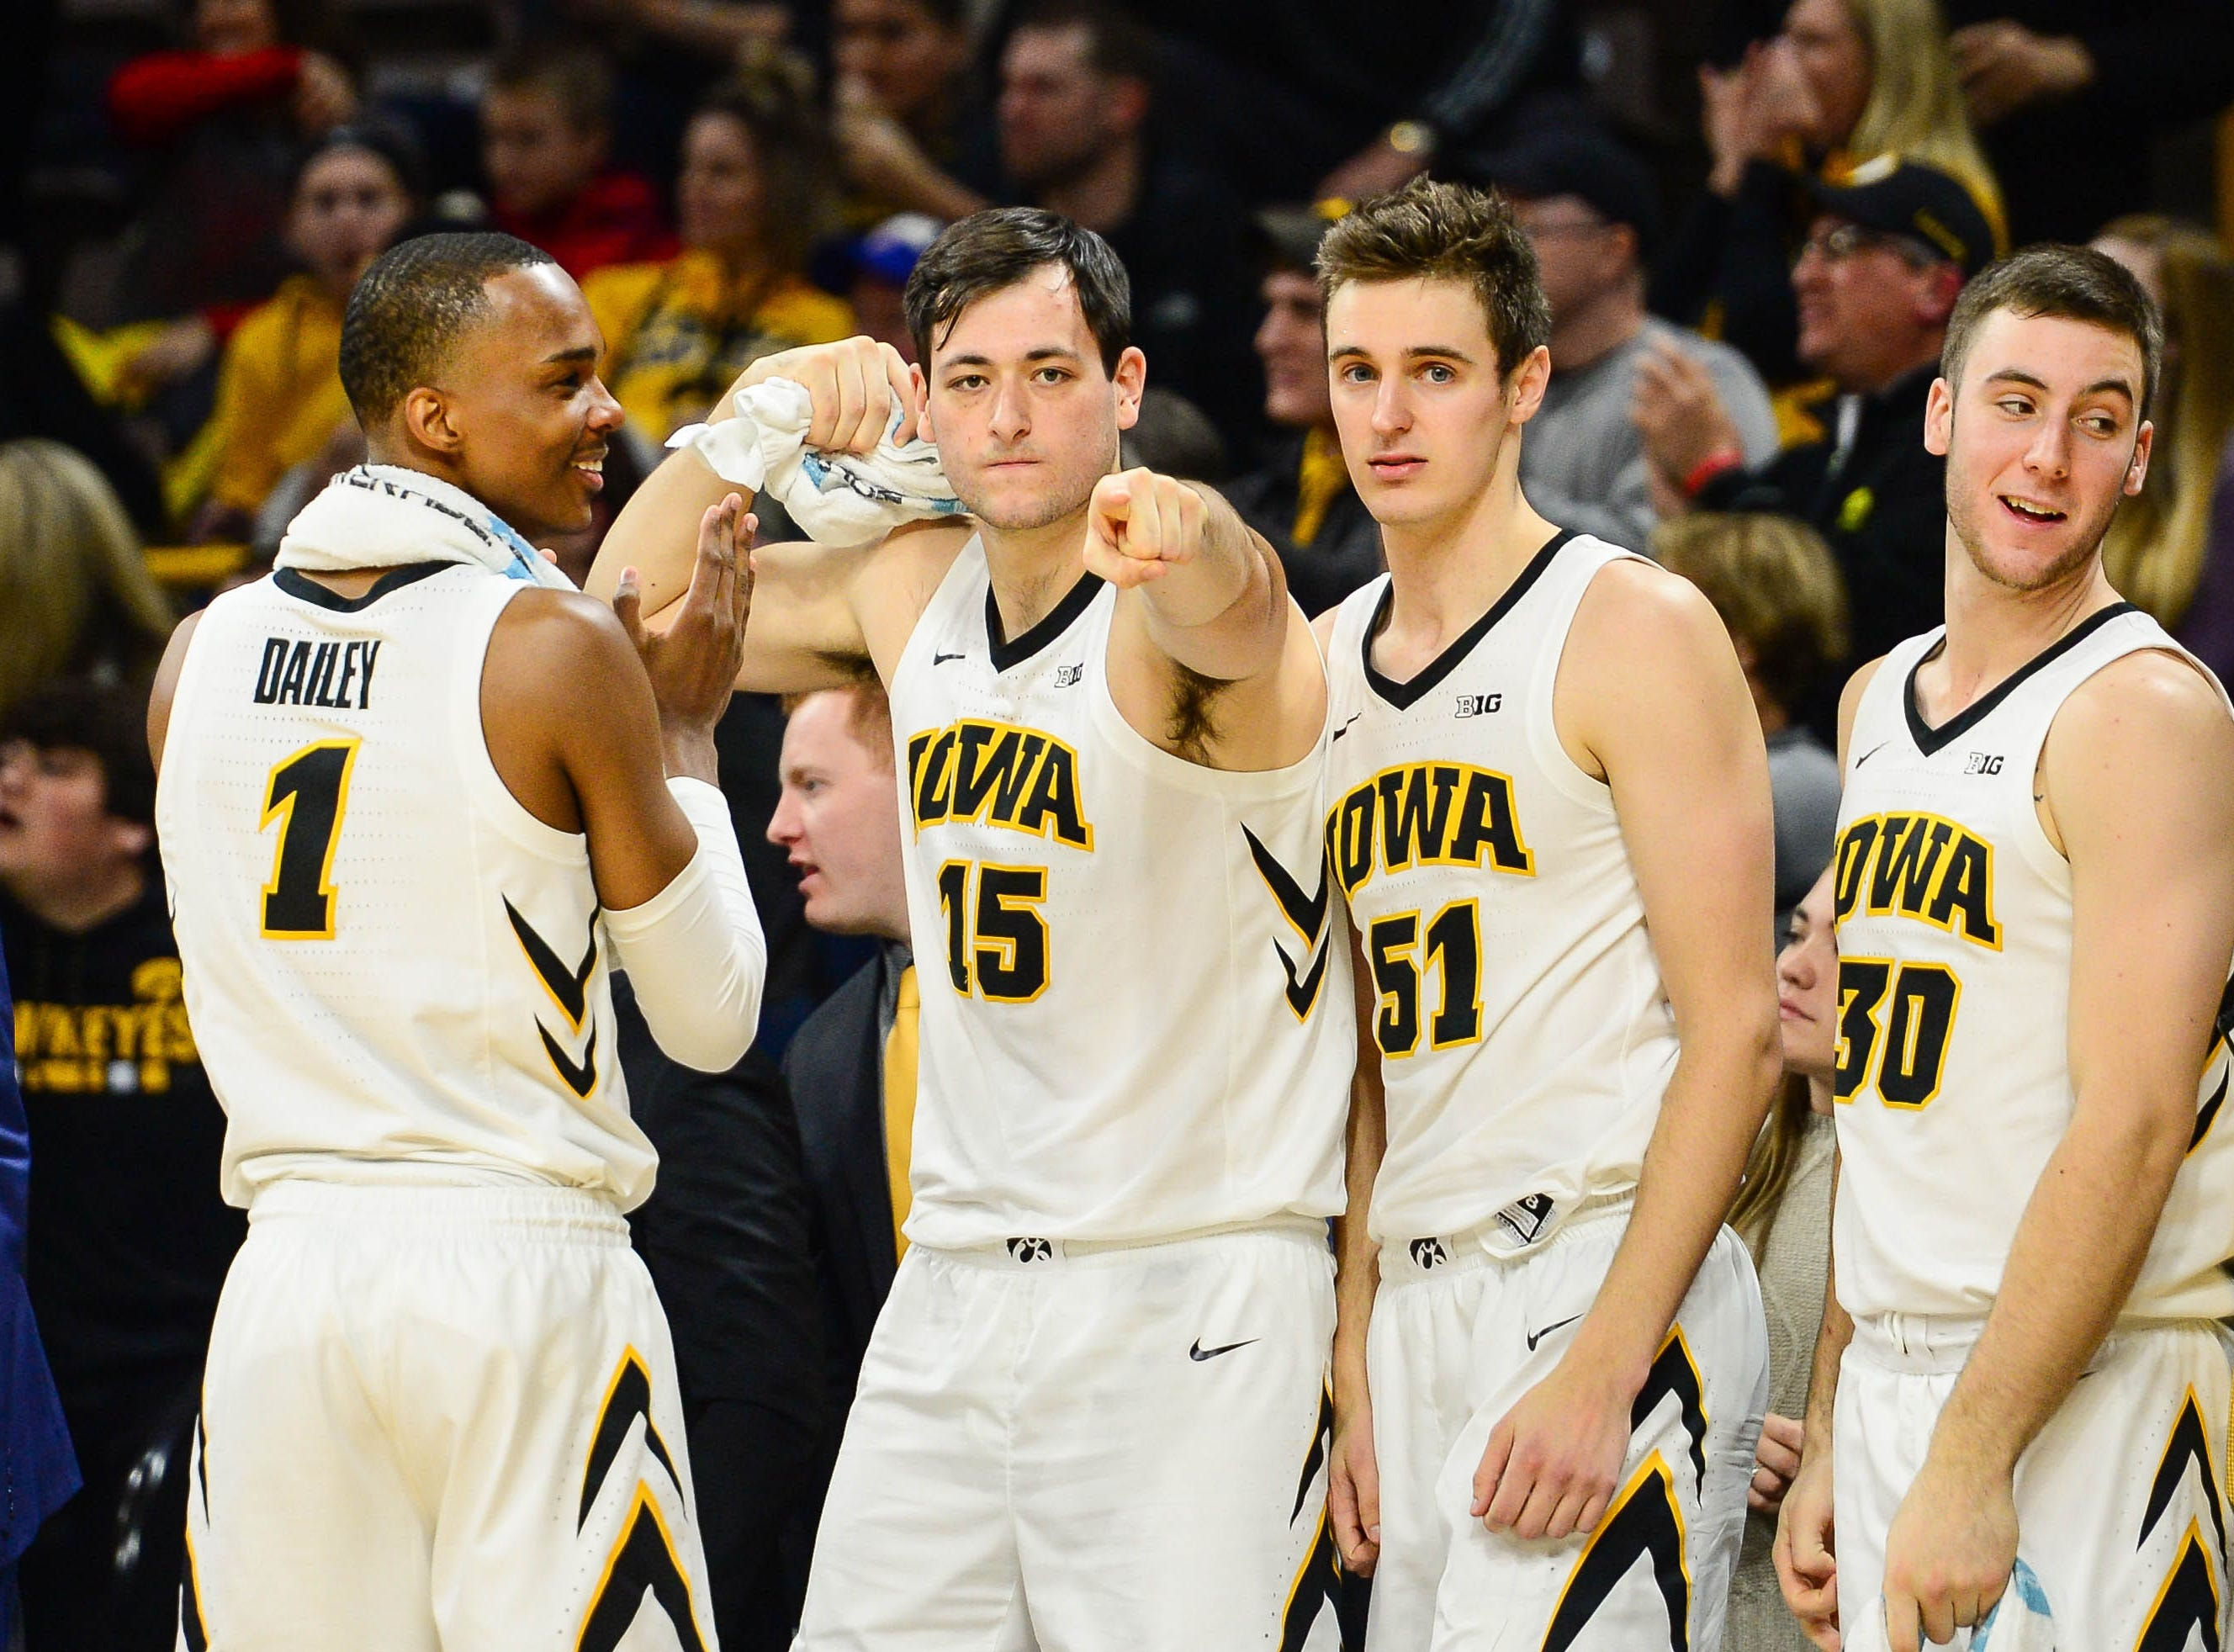 Iowa Hawkeyes guard Maishe Dailey (1) and forward Ryan Kriener (15) and forward Nicholas Baer (51) and guard Connor McCaffery (30) react during the second half against the Ohio State Buckeyes at Carver-Hawkeye Arena.